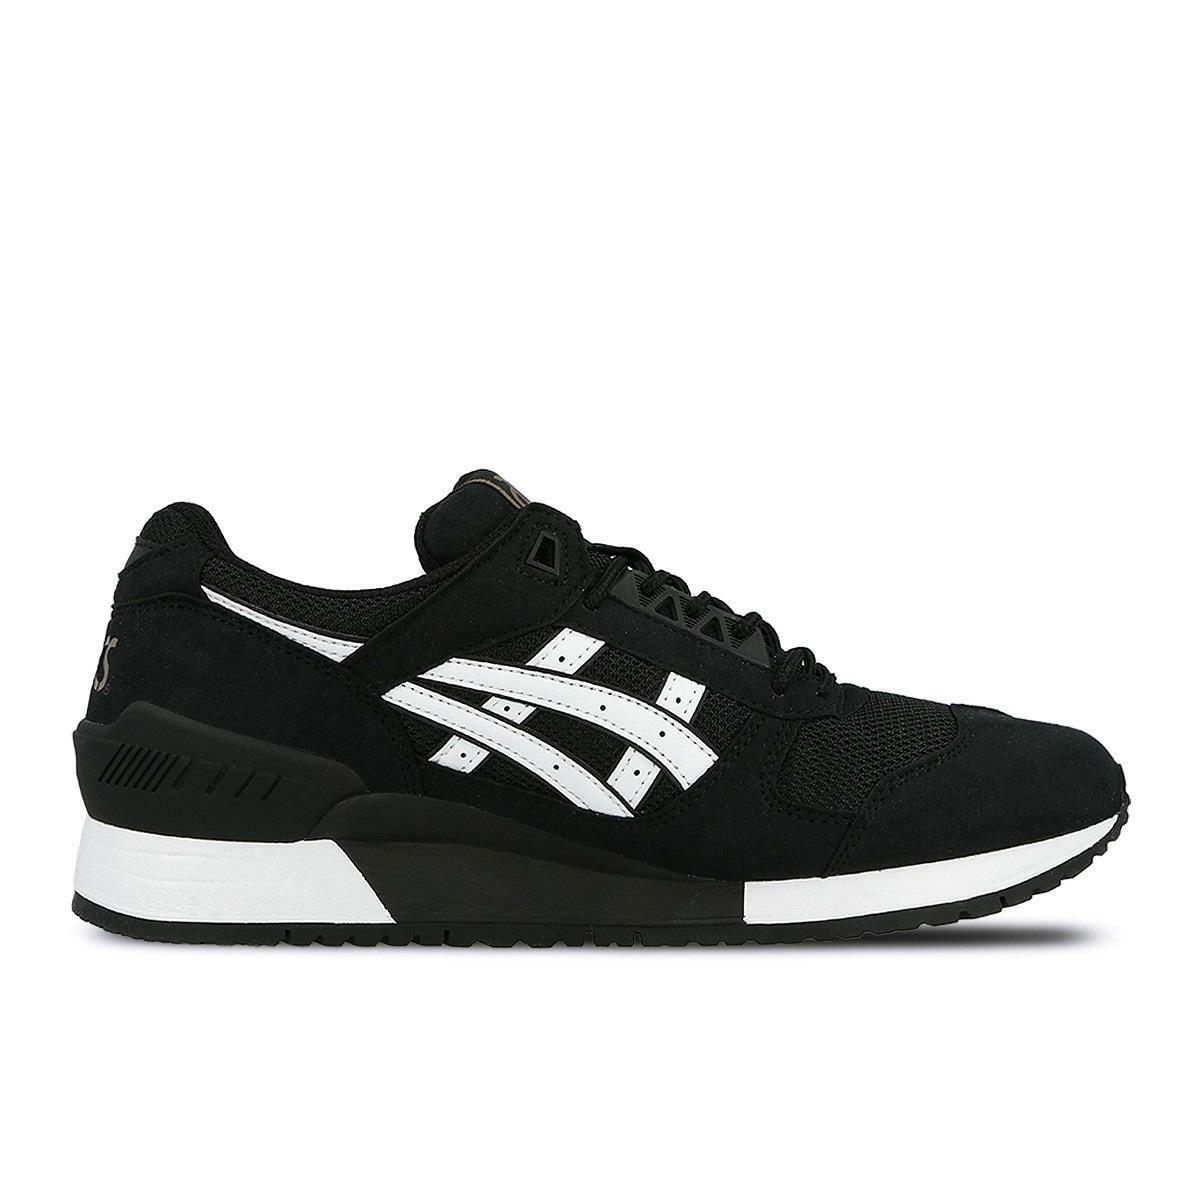 Mens ASICS GEL RESPECTOR Black Trainers H722N 9001